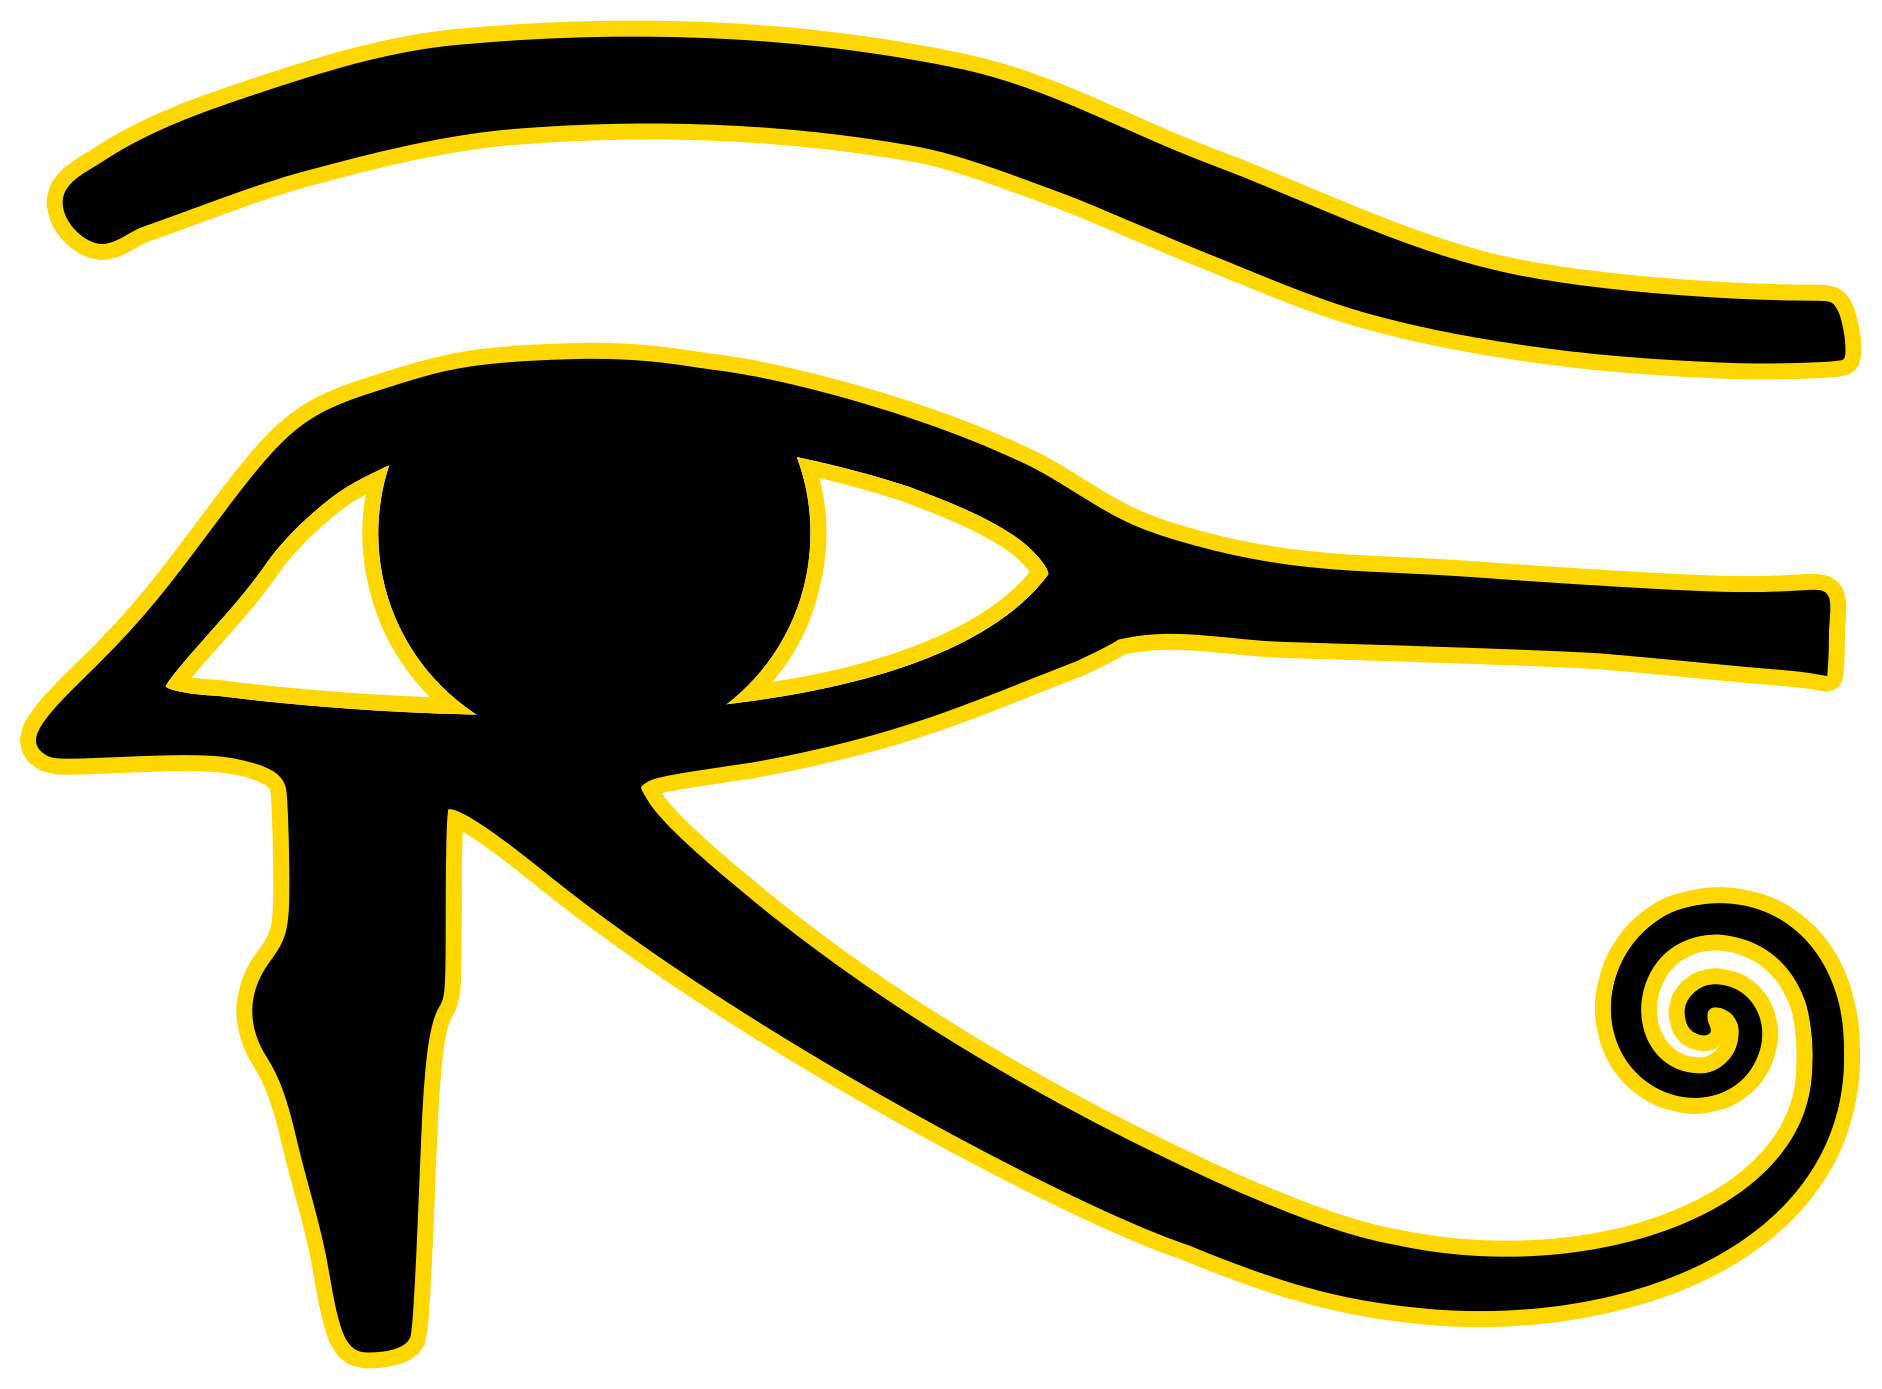 Eye of Horus - Left (I am using this in the most general sense of being a pagan eye symbol.  I love this symbol, and it appeared to me in golden laser light with my eyes closed after a particularly dramatic lucid dream.  So I use with respect for whoever sent me that symbol.)